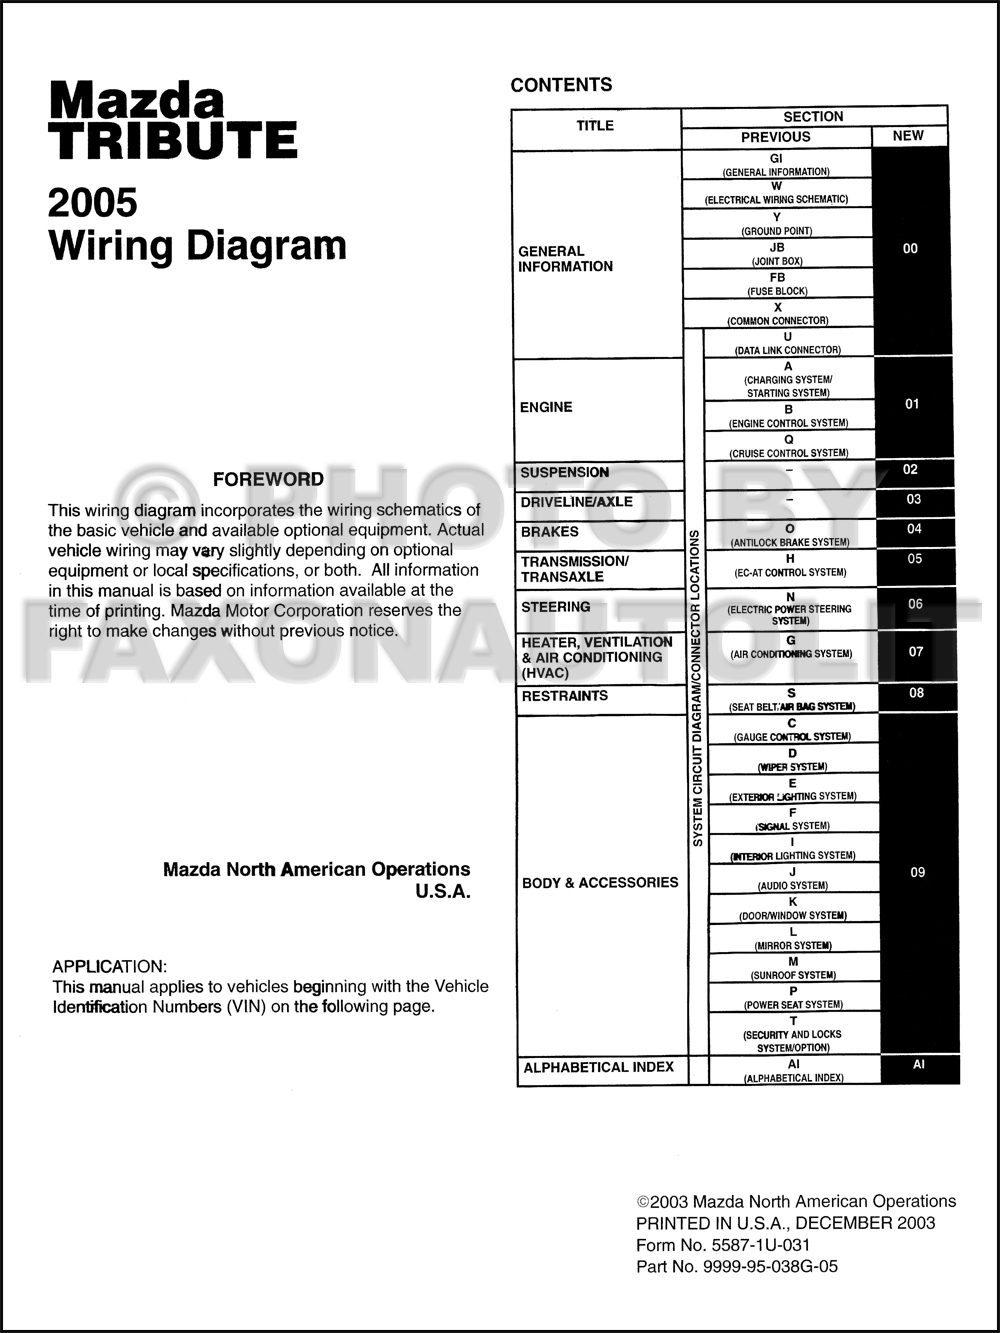 2005 mazda tribute wiring diagram manual original. Black Bedroom Furniture Sets. Home Design Ideas